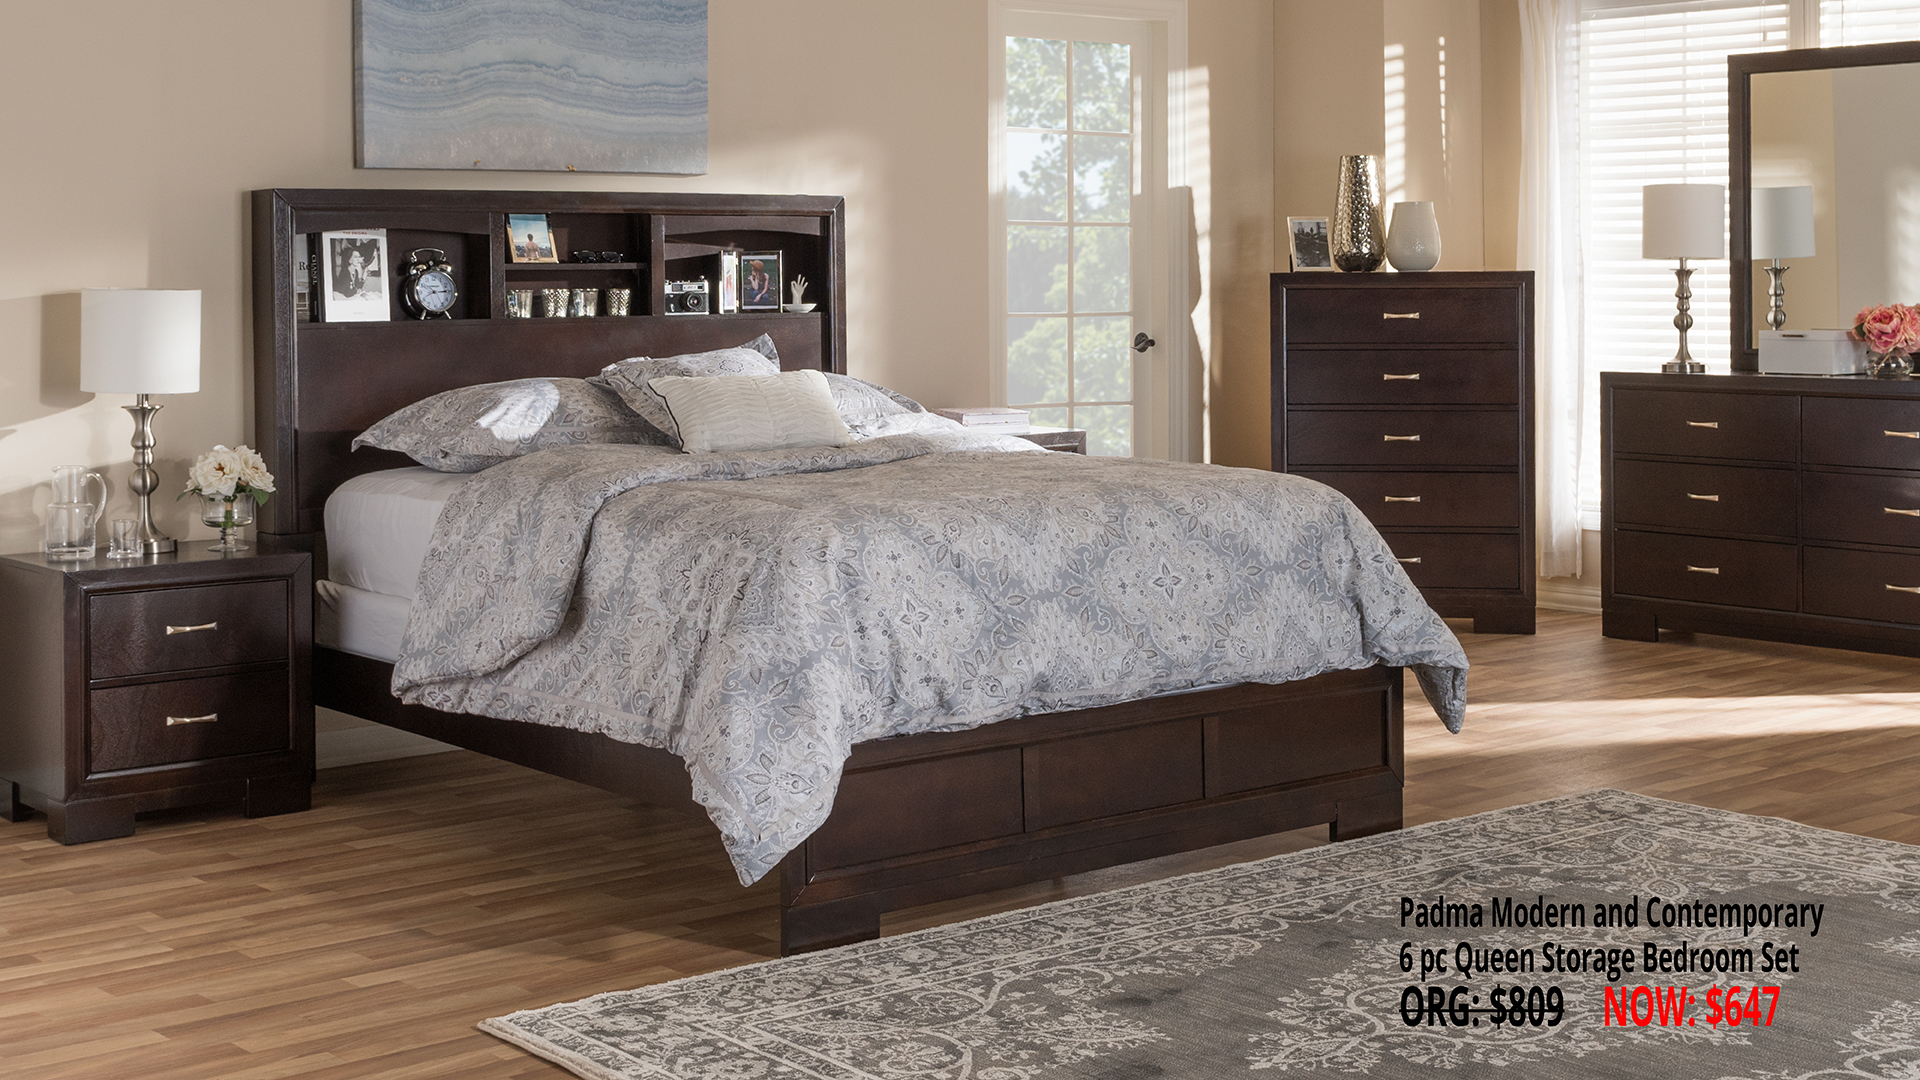 Mo mo mo modern bedroom sets dallas - Furniture At Low Prices You Don T Want To Miss Sign Up Today For Future Promotional Deals Coupons And Latest Trends